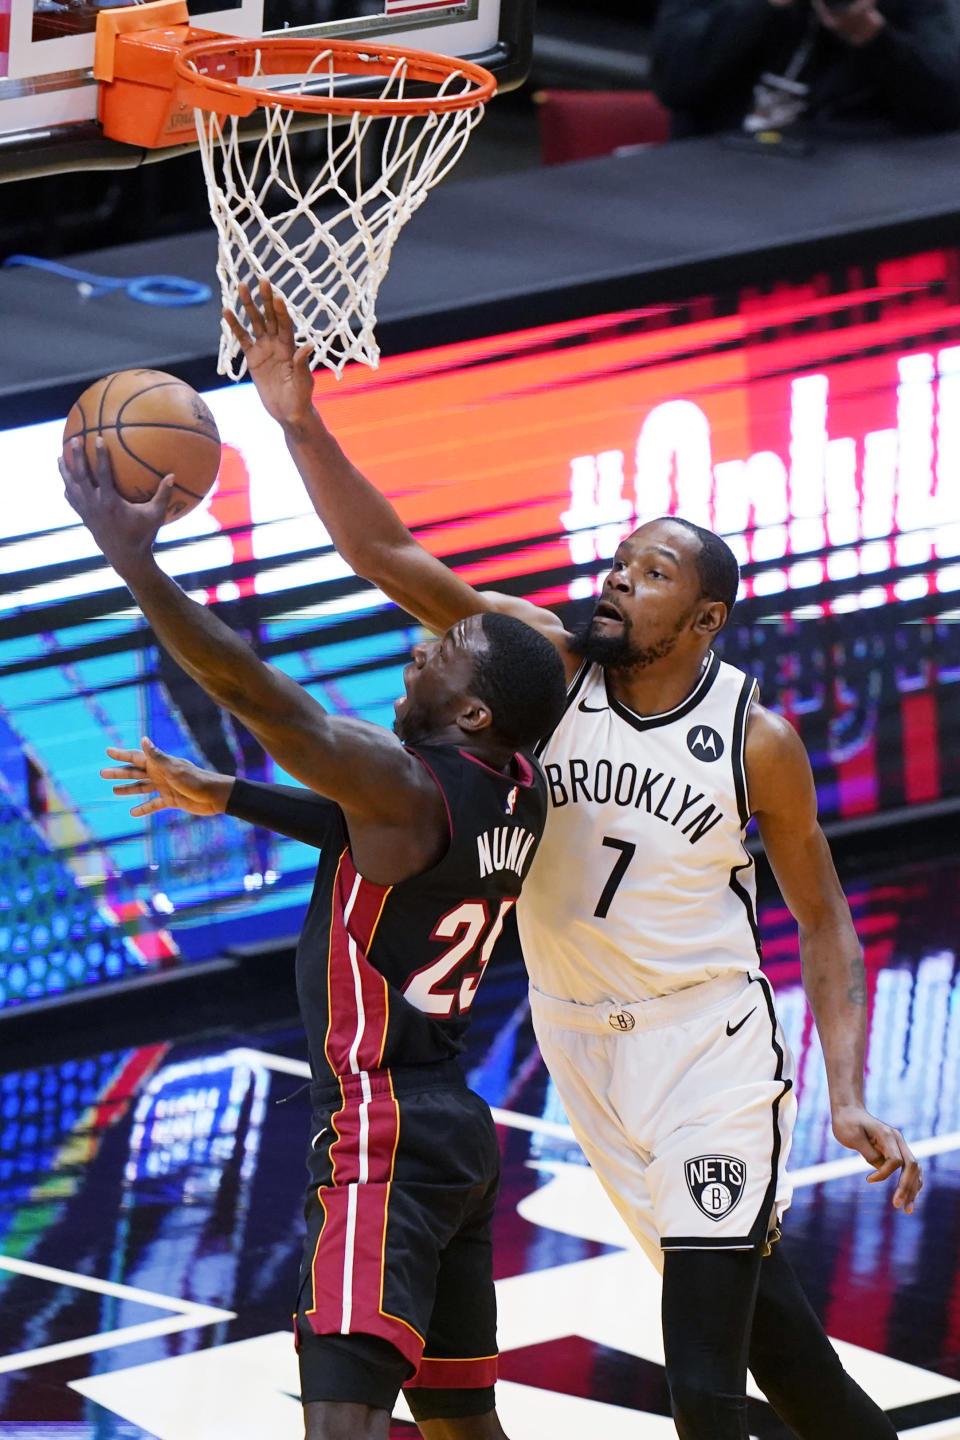 Miami Heat guard Kendrick Nunn (25) goes up for a shot against Brooklyn Nets forward Kevin Durant (7) during the first half of an NBA basketball game, Sunday, April 18, 2021, in Miami. (AP Photo/Wilfredo Lee)